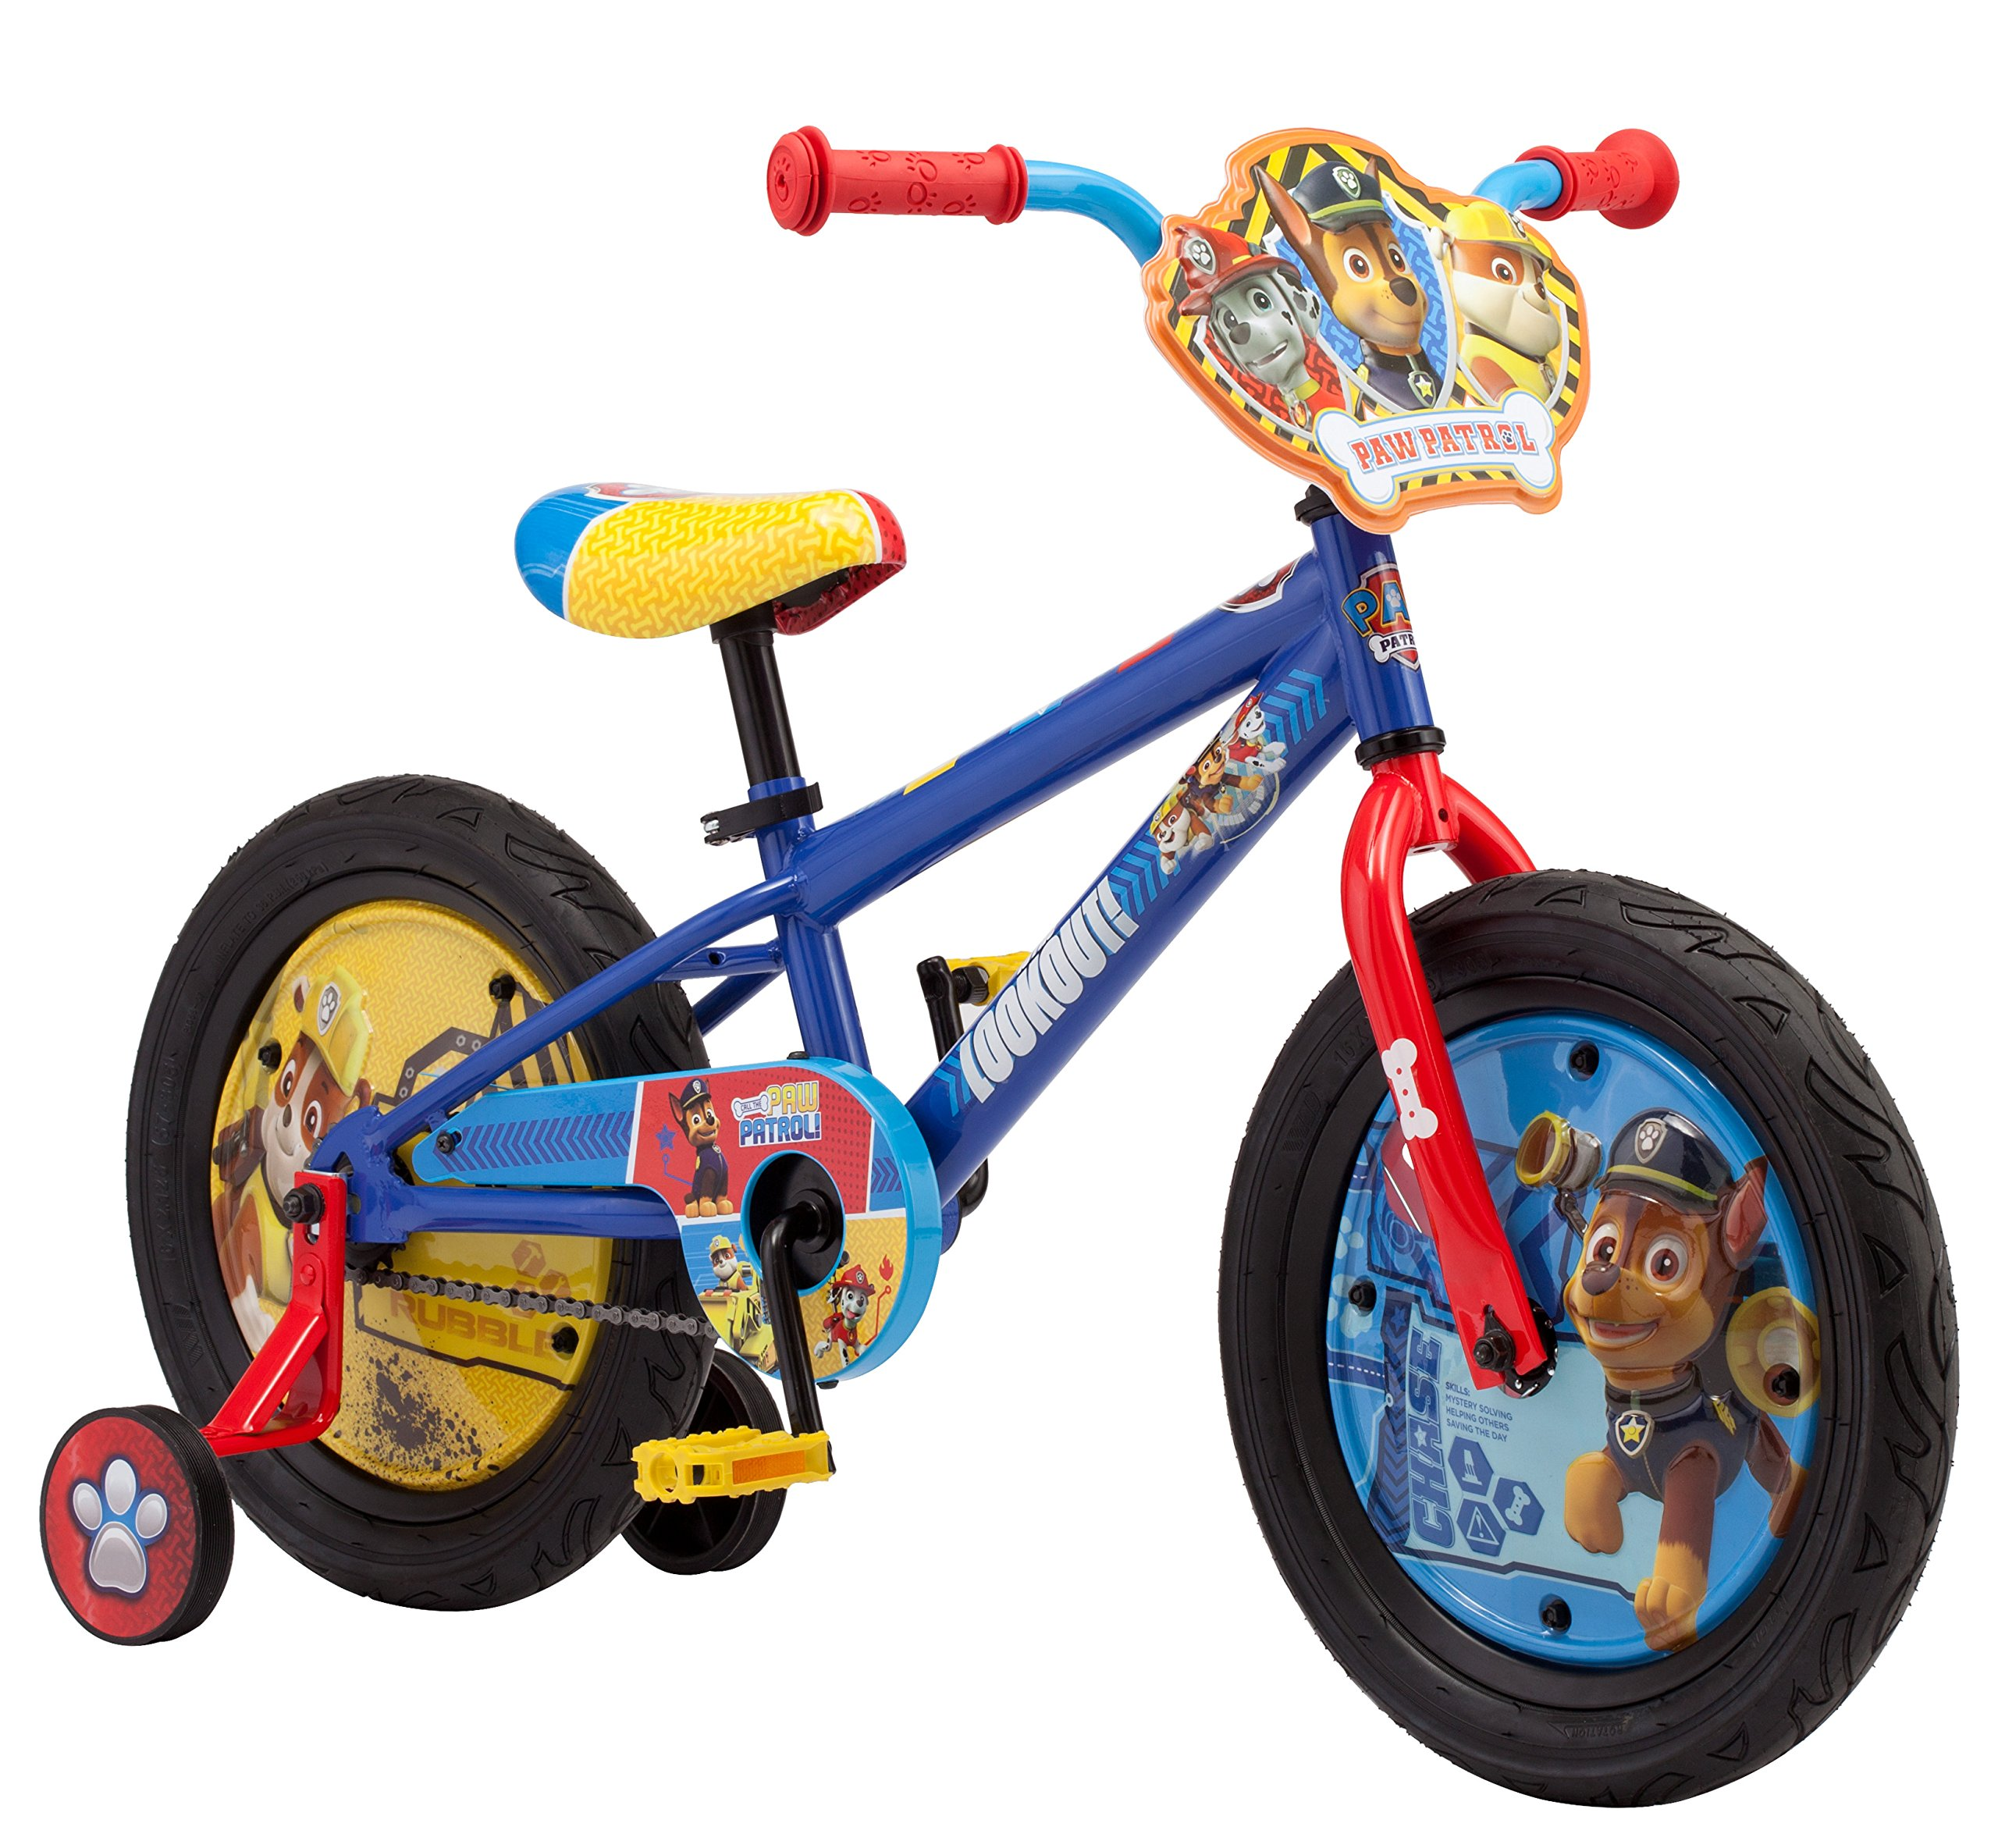 Nickelodeon Paw Patrol Boy's Bicycle With Training Wheels, 16-Inch Wheels by Nickelodeon